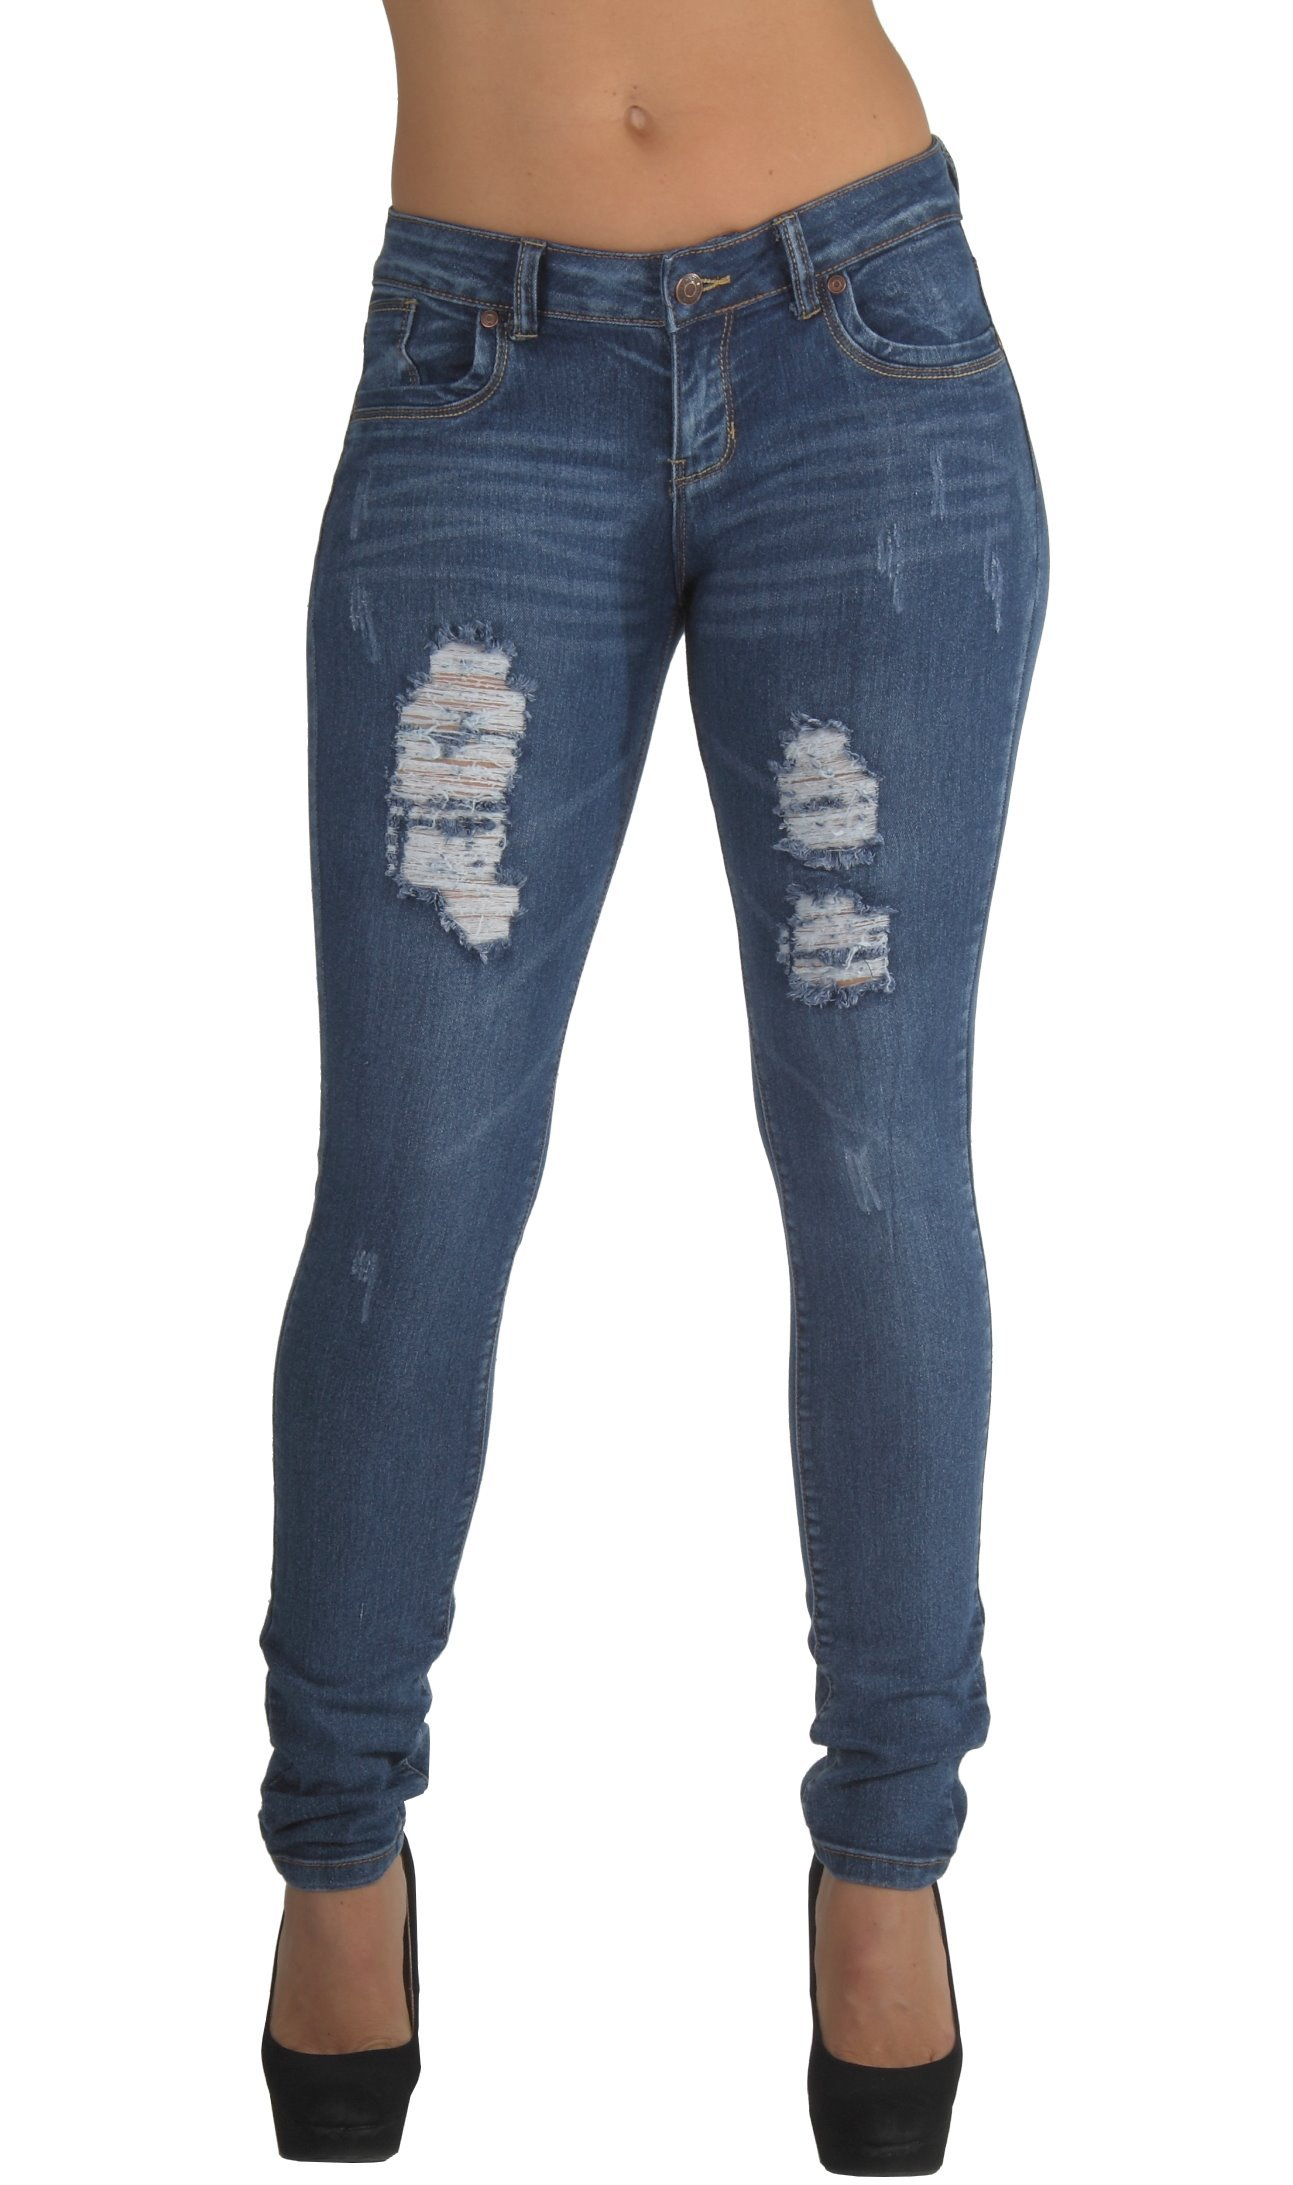 Style CH032P - Plus Size, Classic, Ripped Distressed, Destroyed Skinny Jeans in Washed Blue Size 22